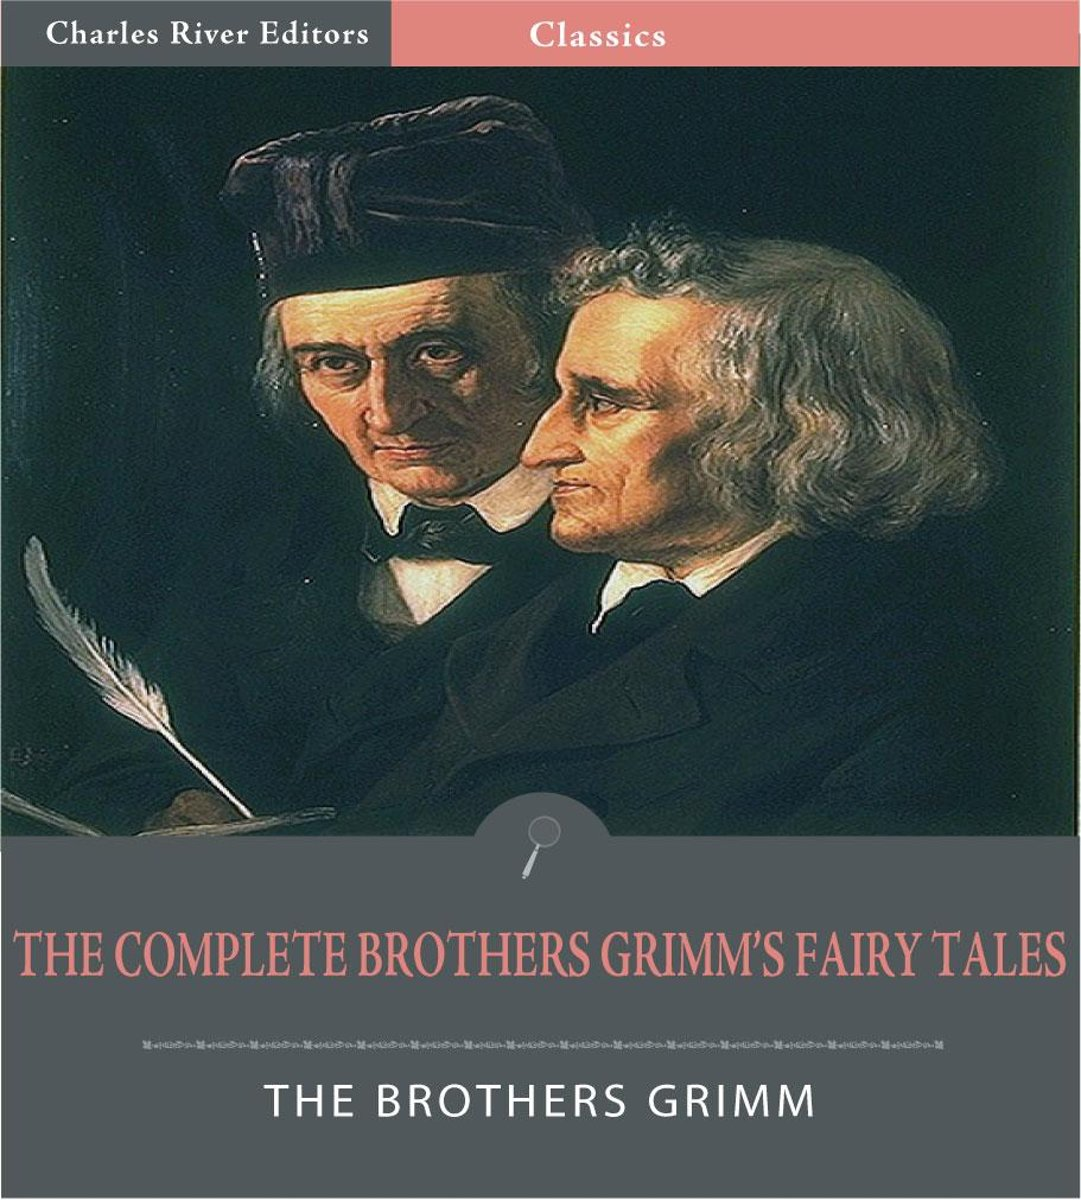 The Complete Brothers Grimms Fairy Tales (Illustrated Edition)